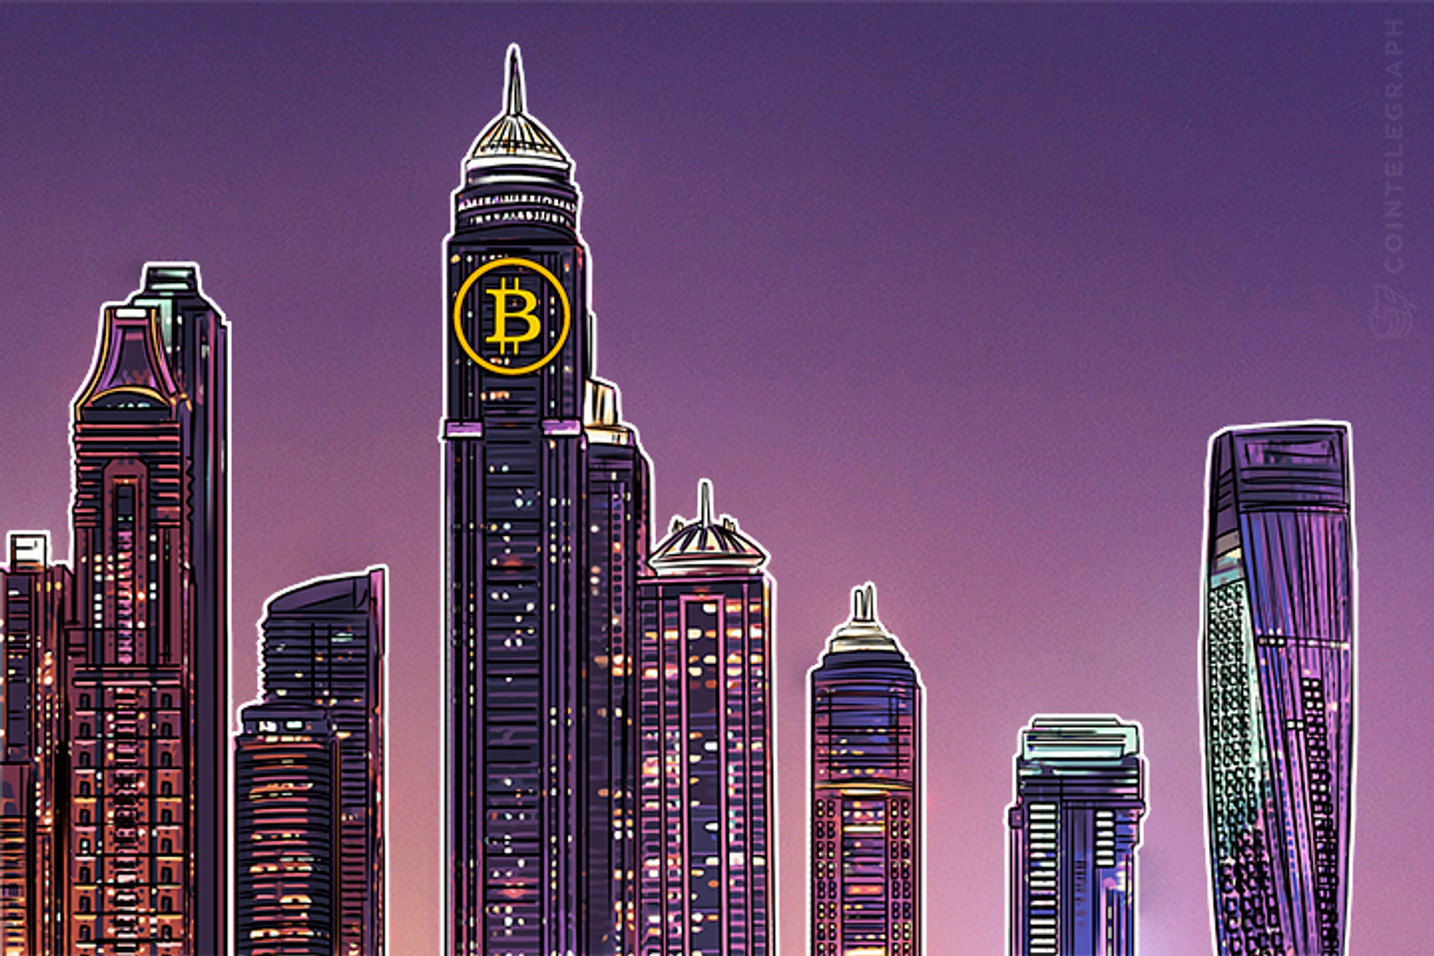 Bitcoin Meets Mainstream Property In $330 Mln BitPay Dubai Deal